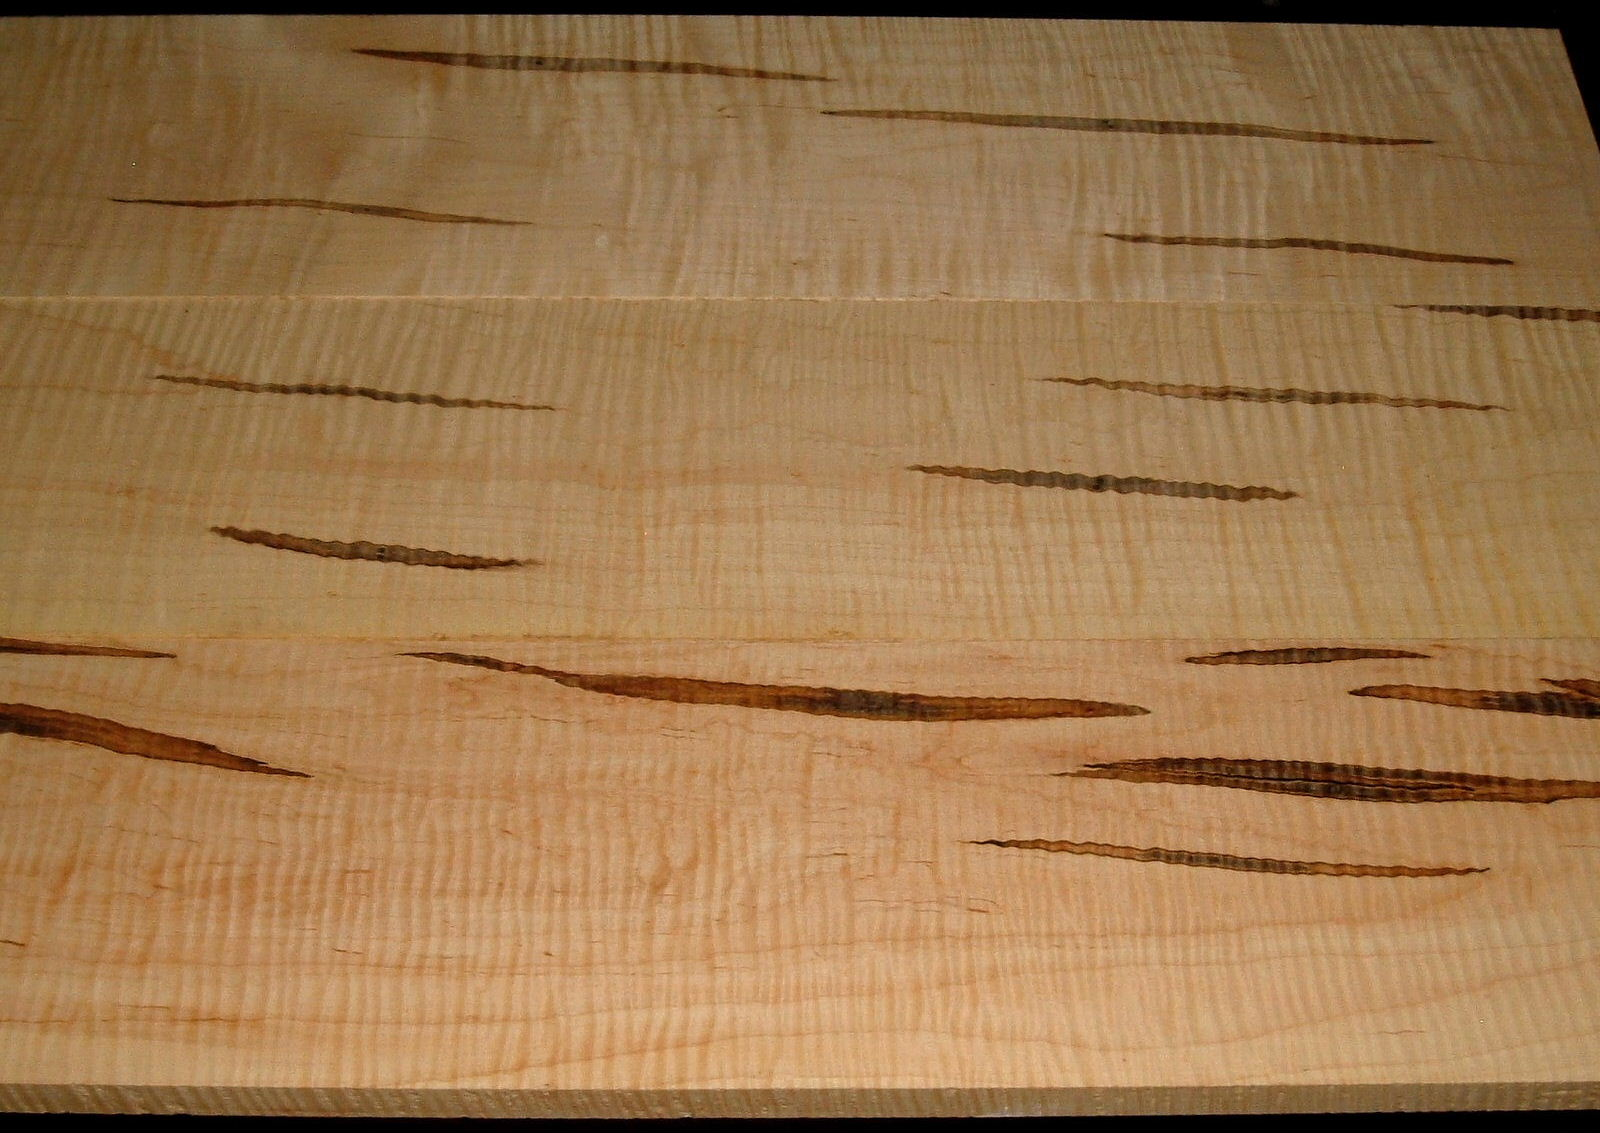 AM2002-39, 3 BD Set,+7/8x7-3/4x37, +7/8x8-1/4x37, 7/8x8x37, Curly Ambrosia Maple